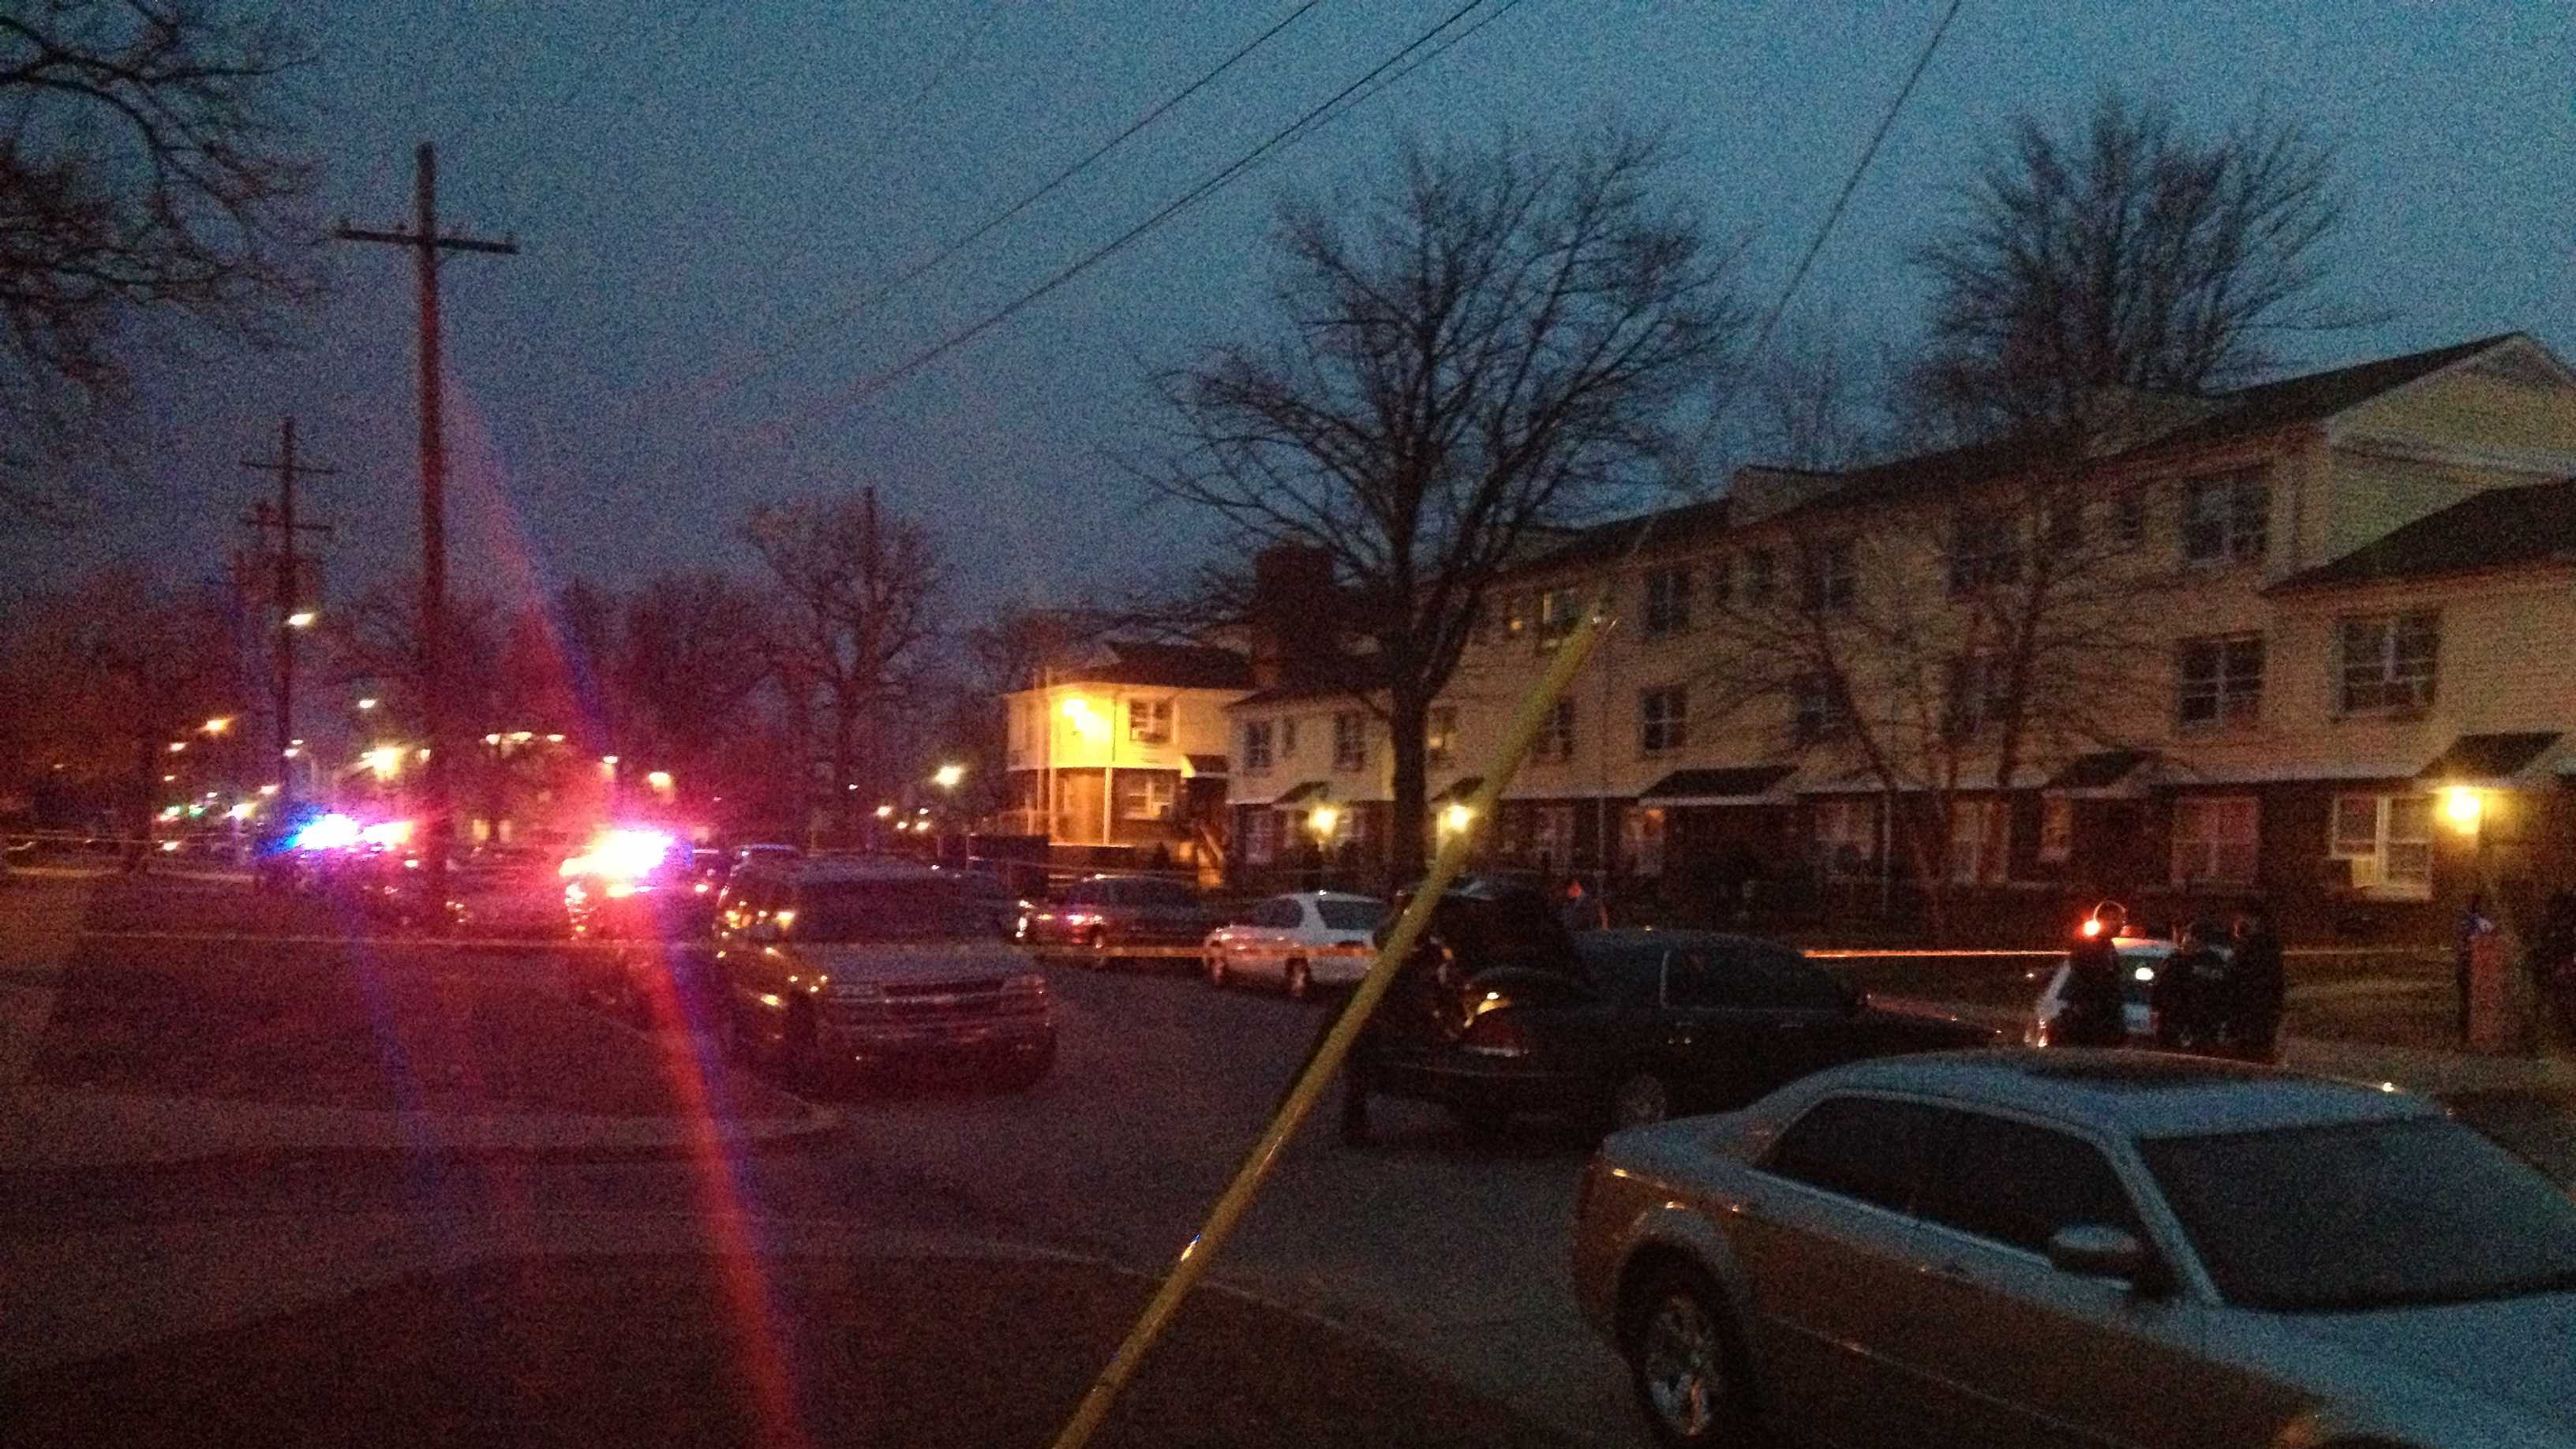 Two people were taken to the hospital for treatment after a shooting at a Louisville housing complex.